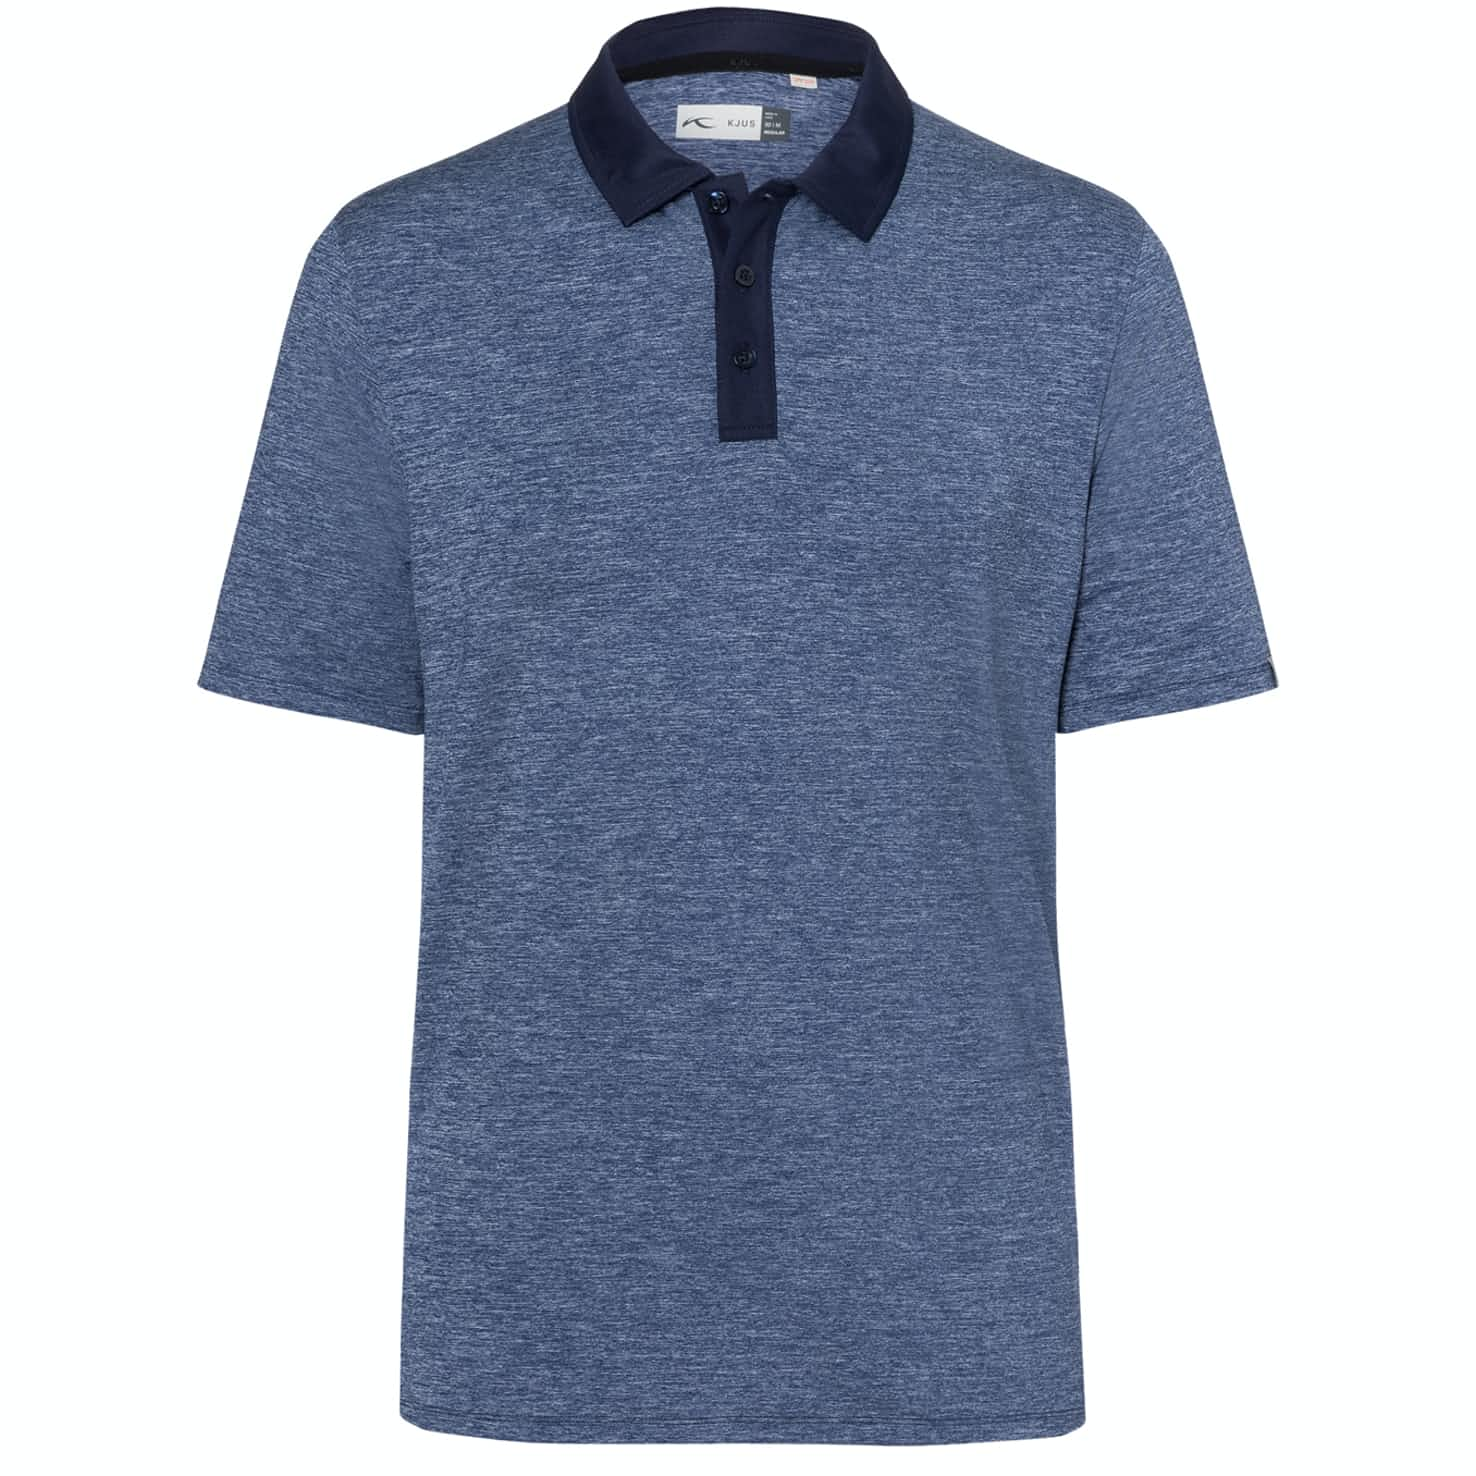 Luca Polo Atlanta Blue Melange - 2020